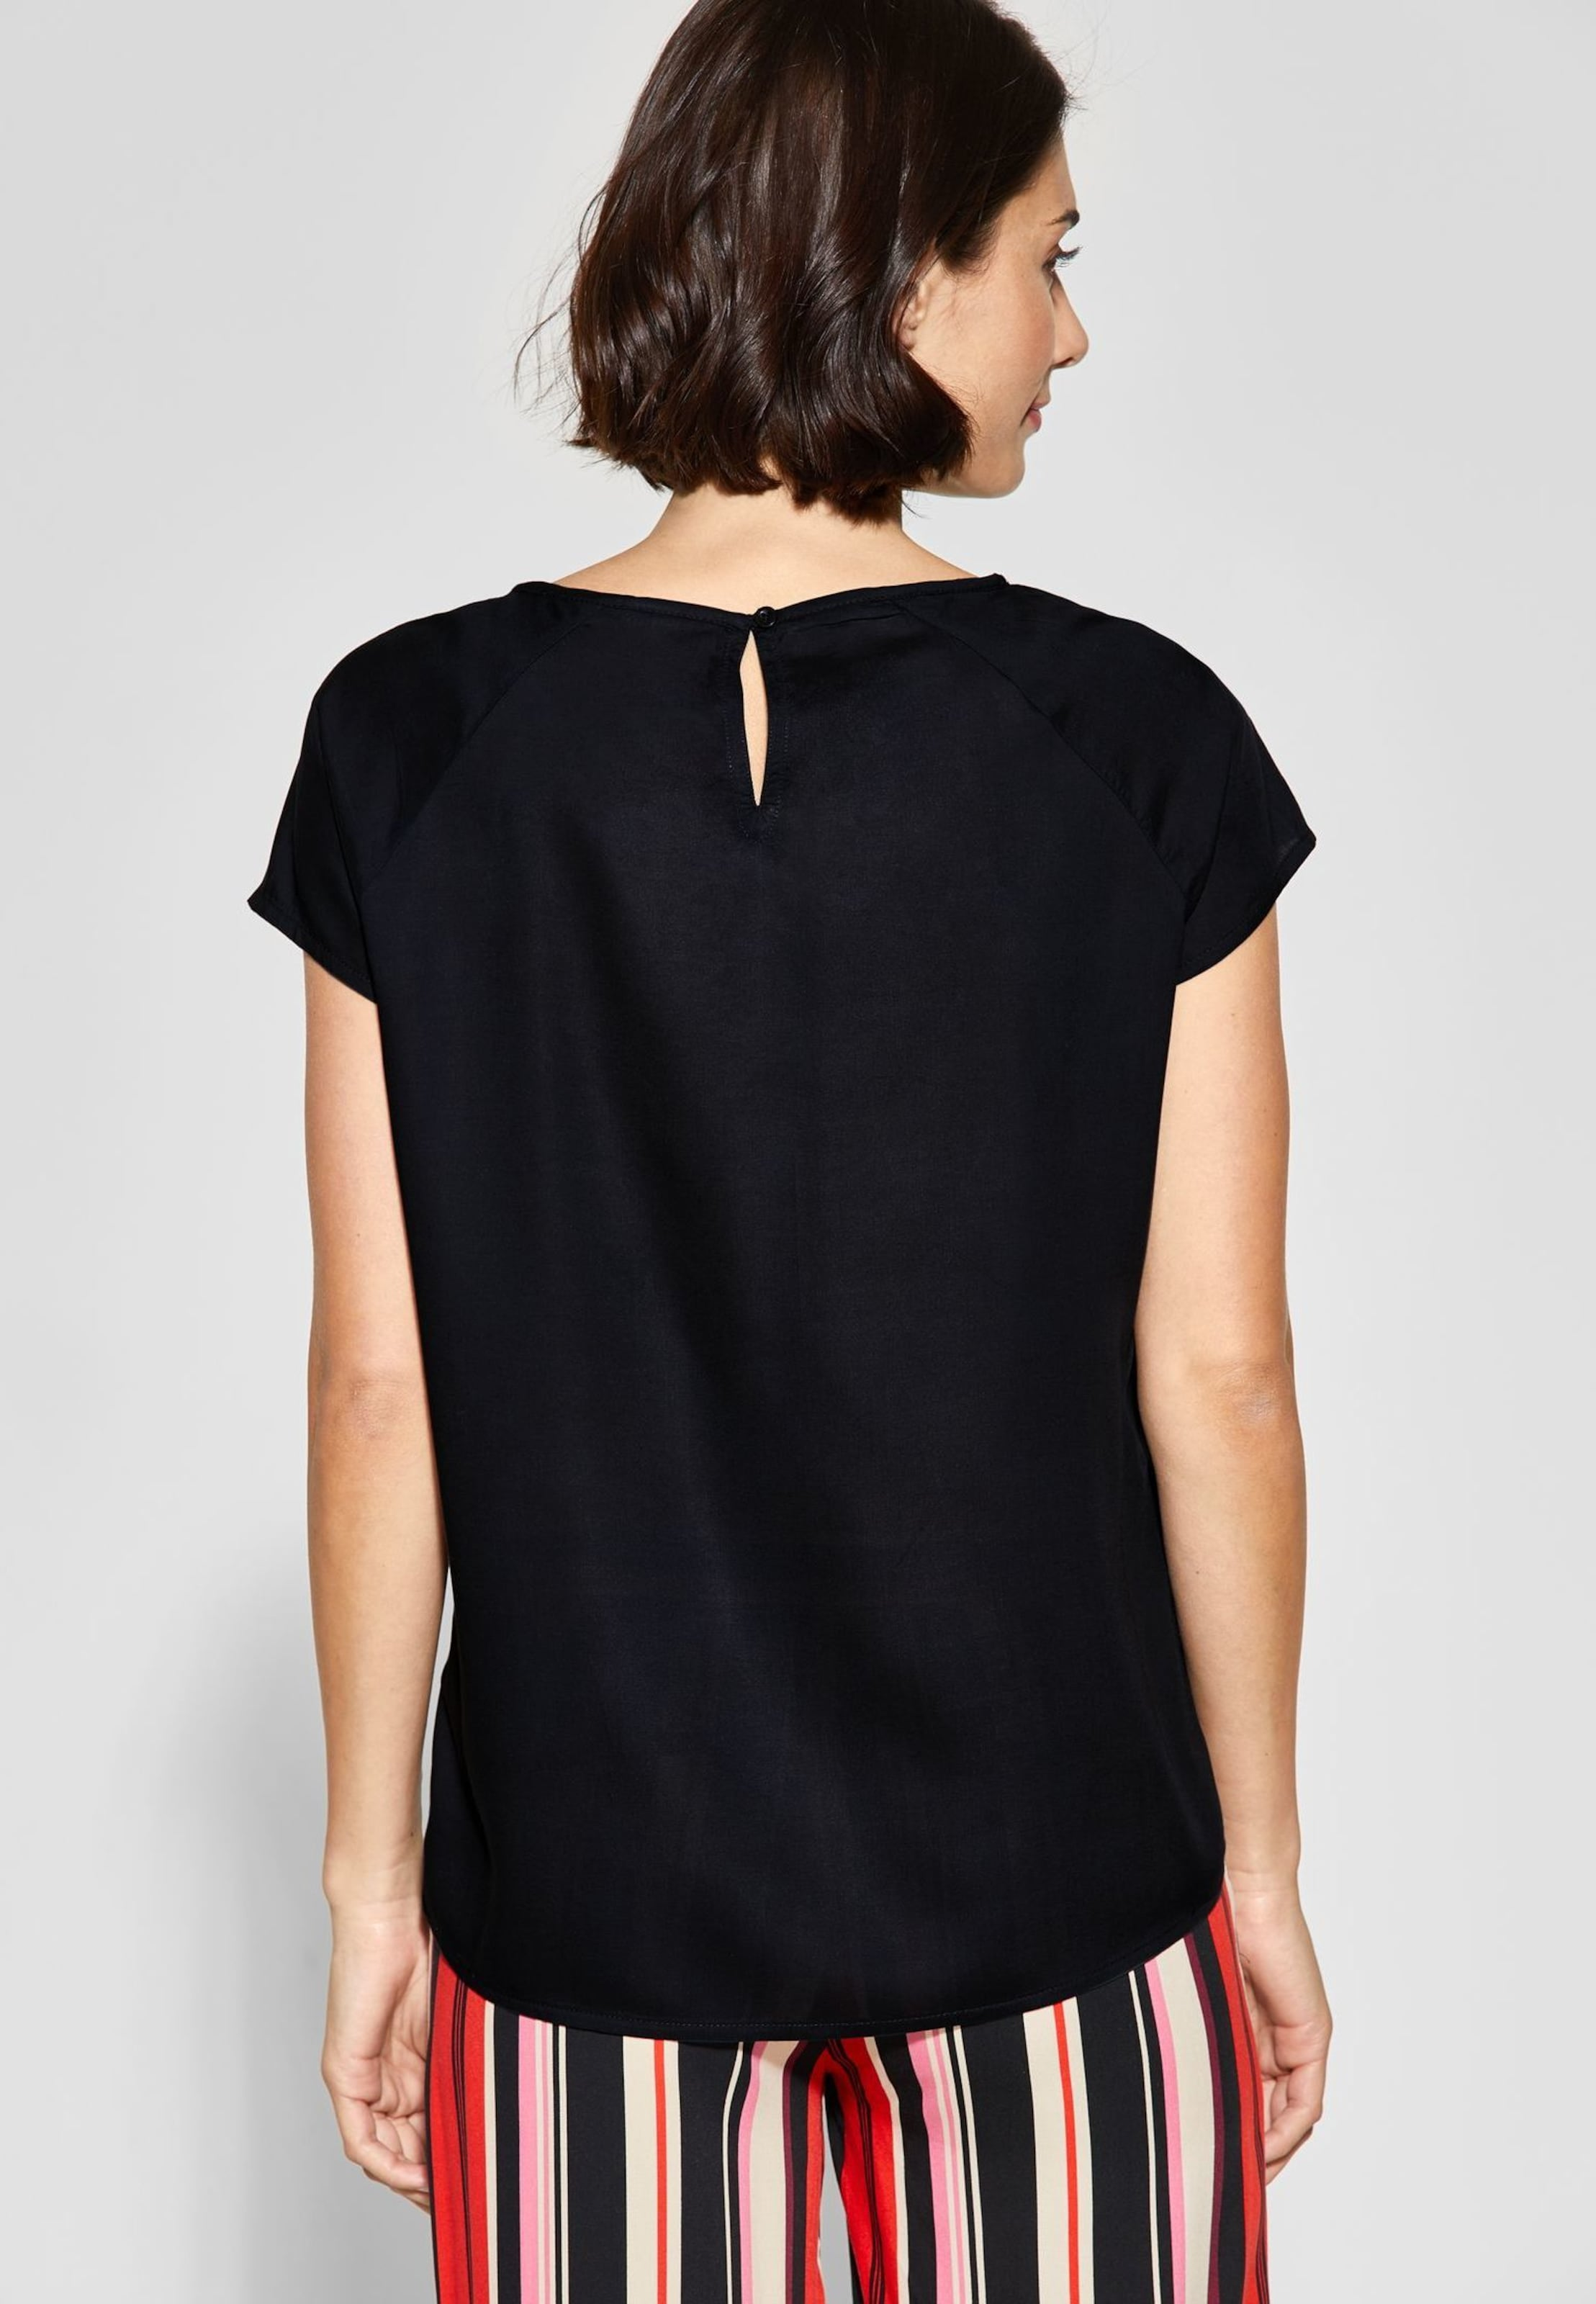 In Street One Shirt 'felia' Schwarz cK1JlF